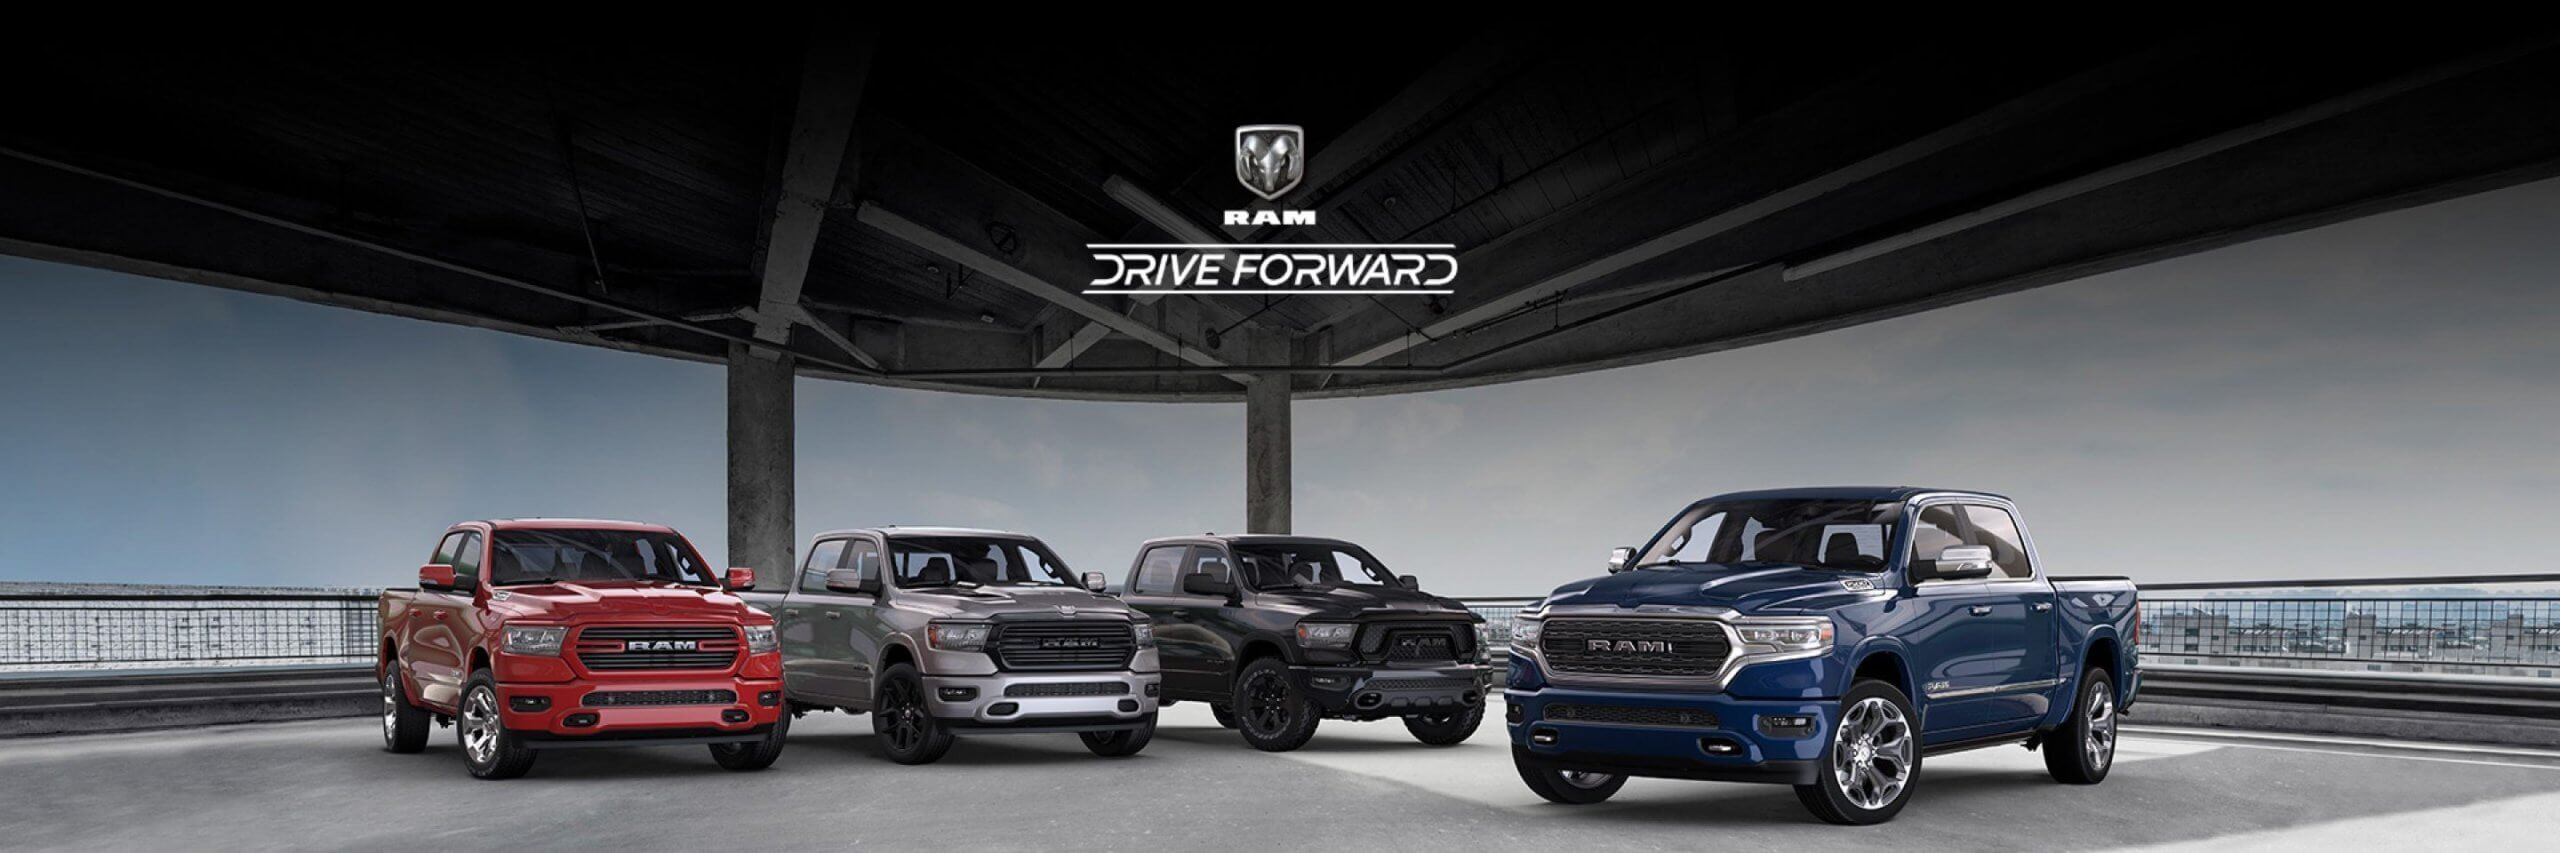 Ram Drive Forward Deals in Los Angeles